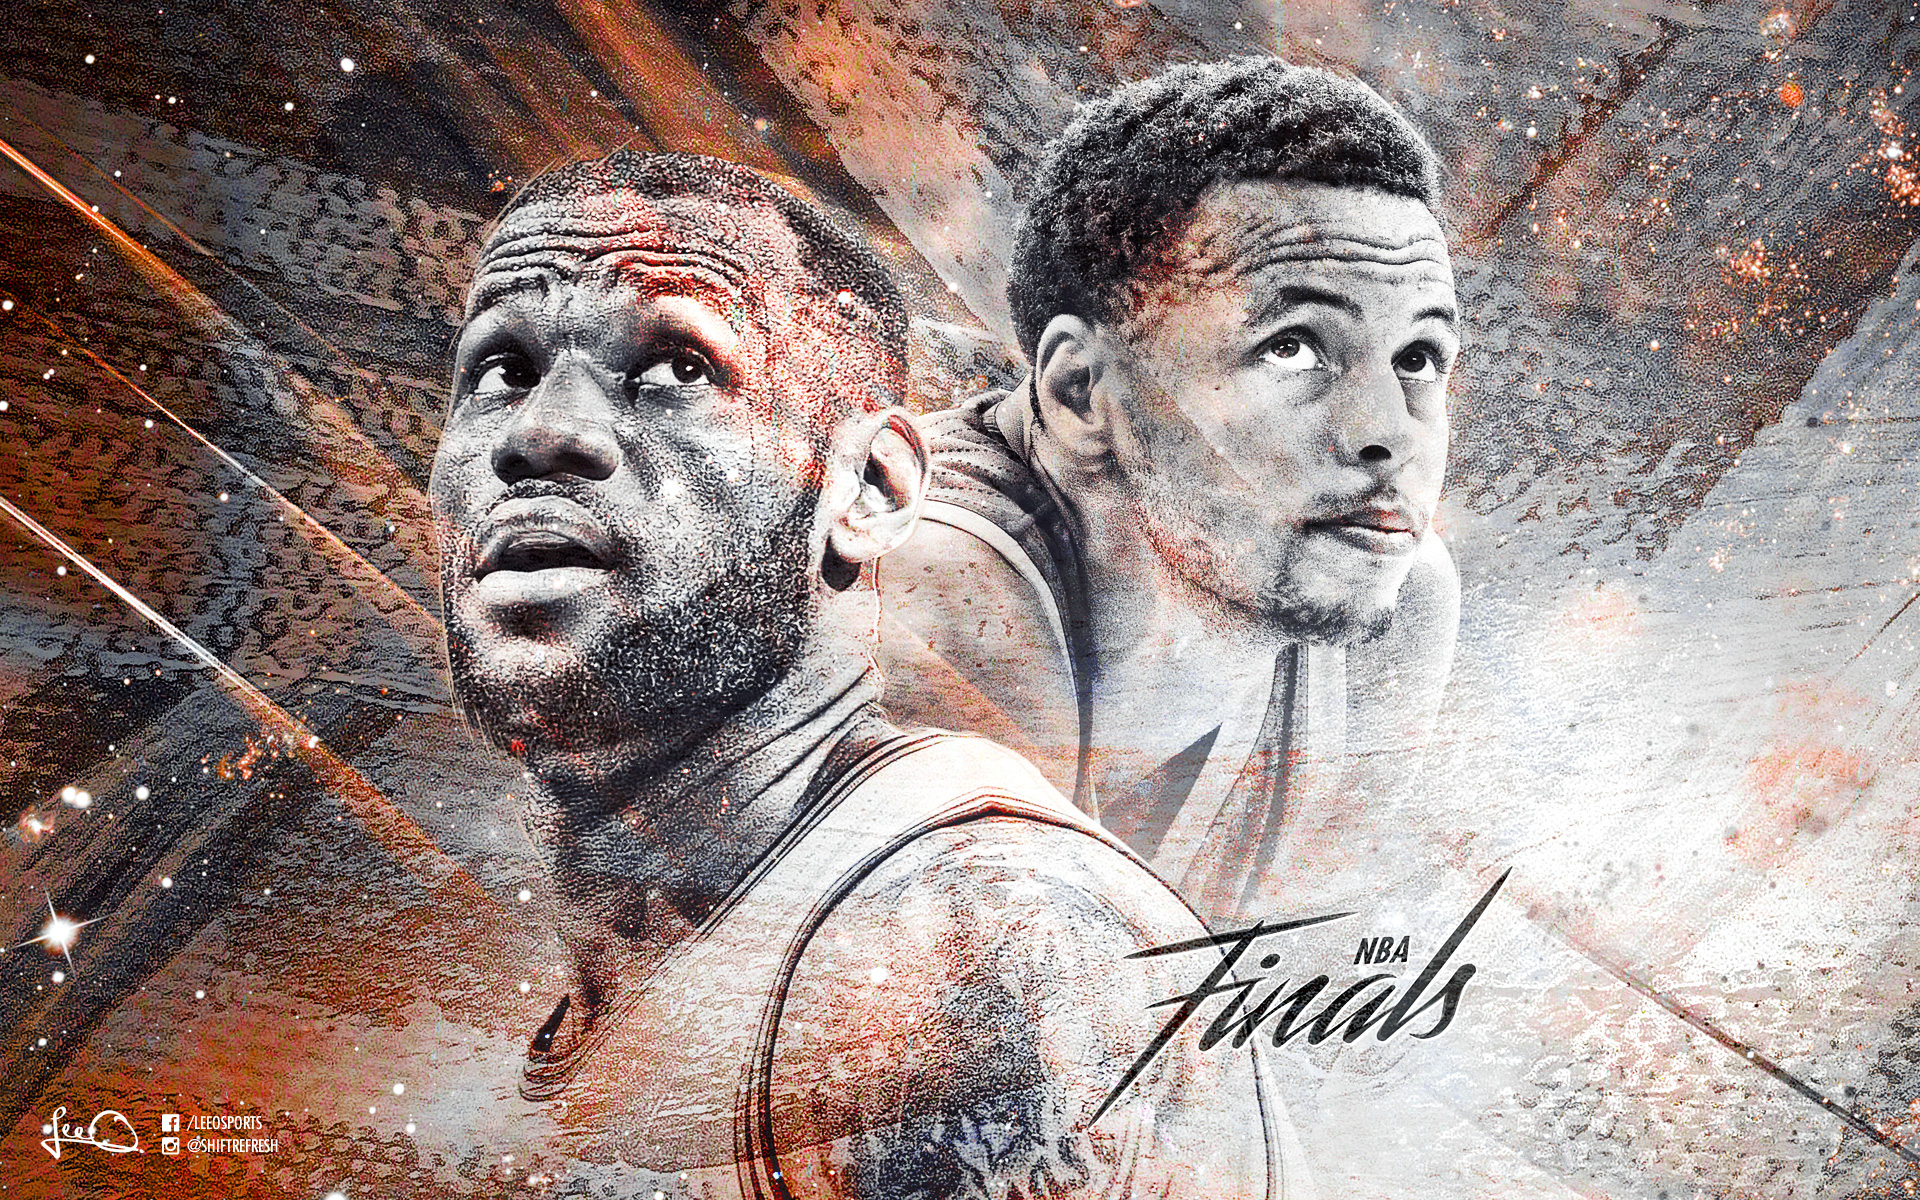 2015 NBA Finals LeBron vs Curry